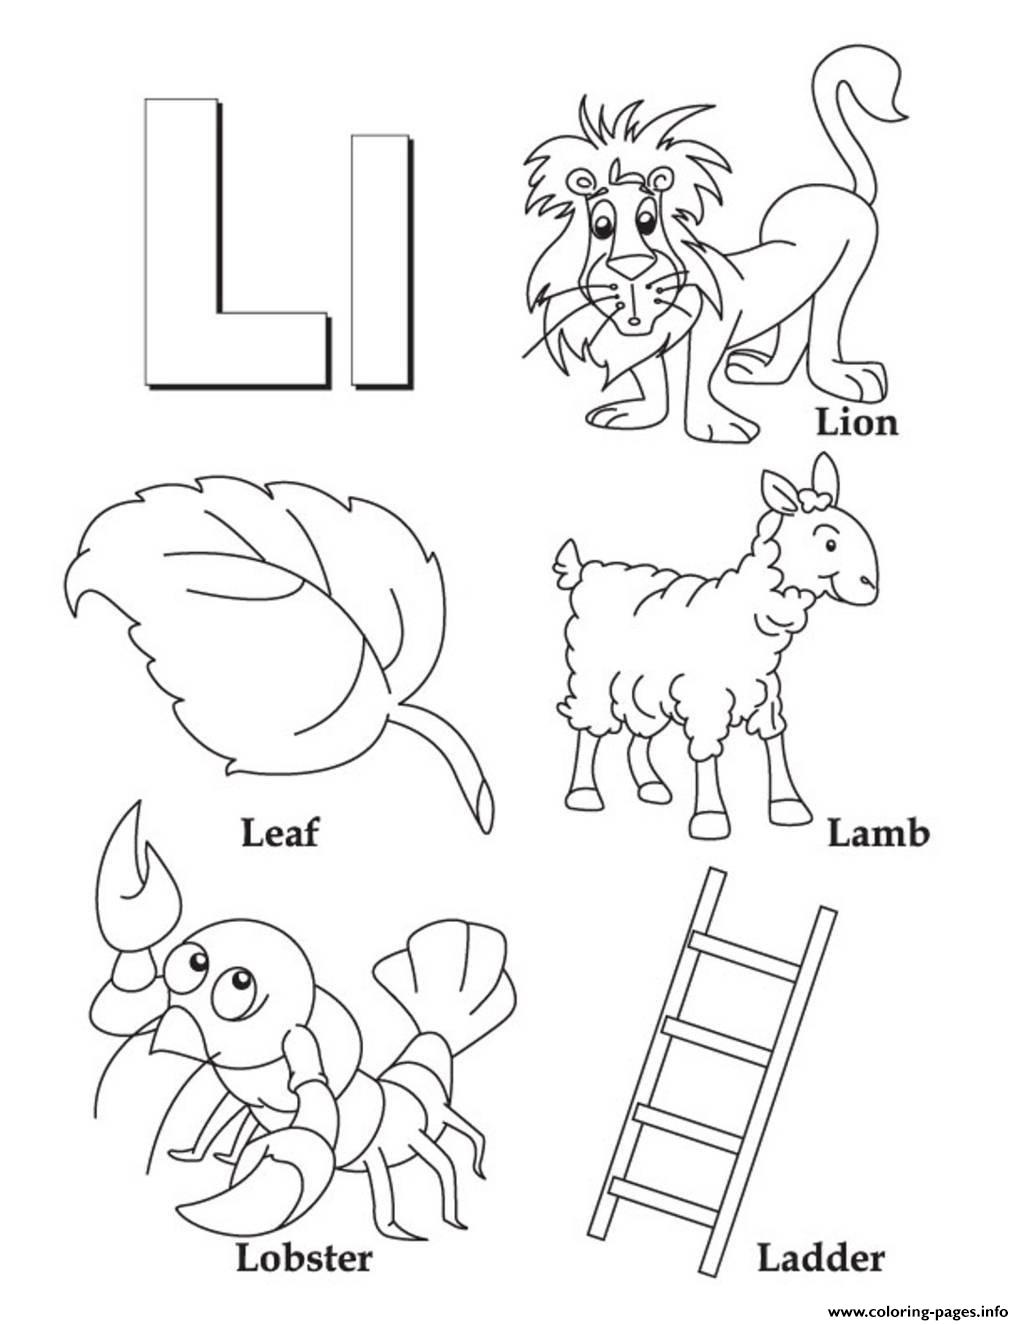 Alphabet S Free Words Of Lb9e1 Coloring Pages Printable